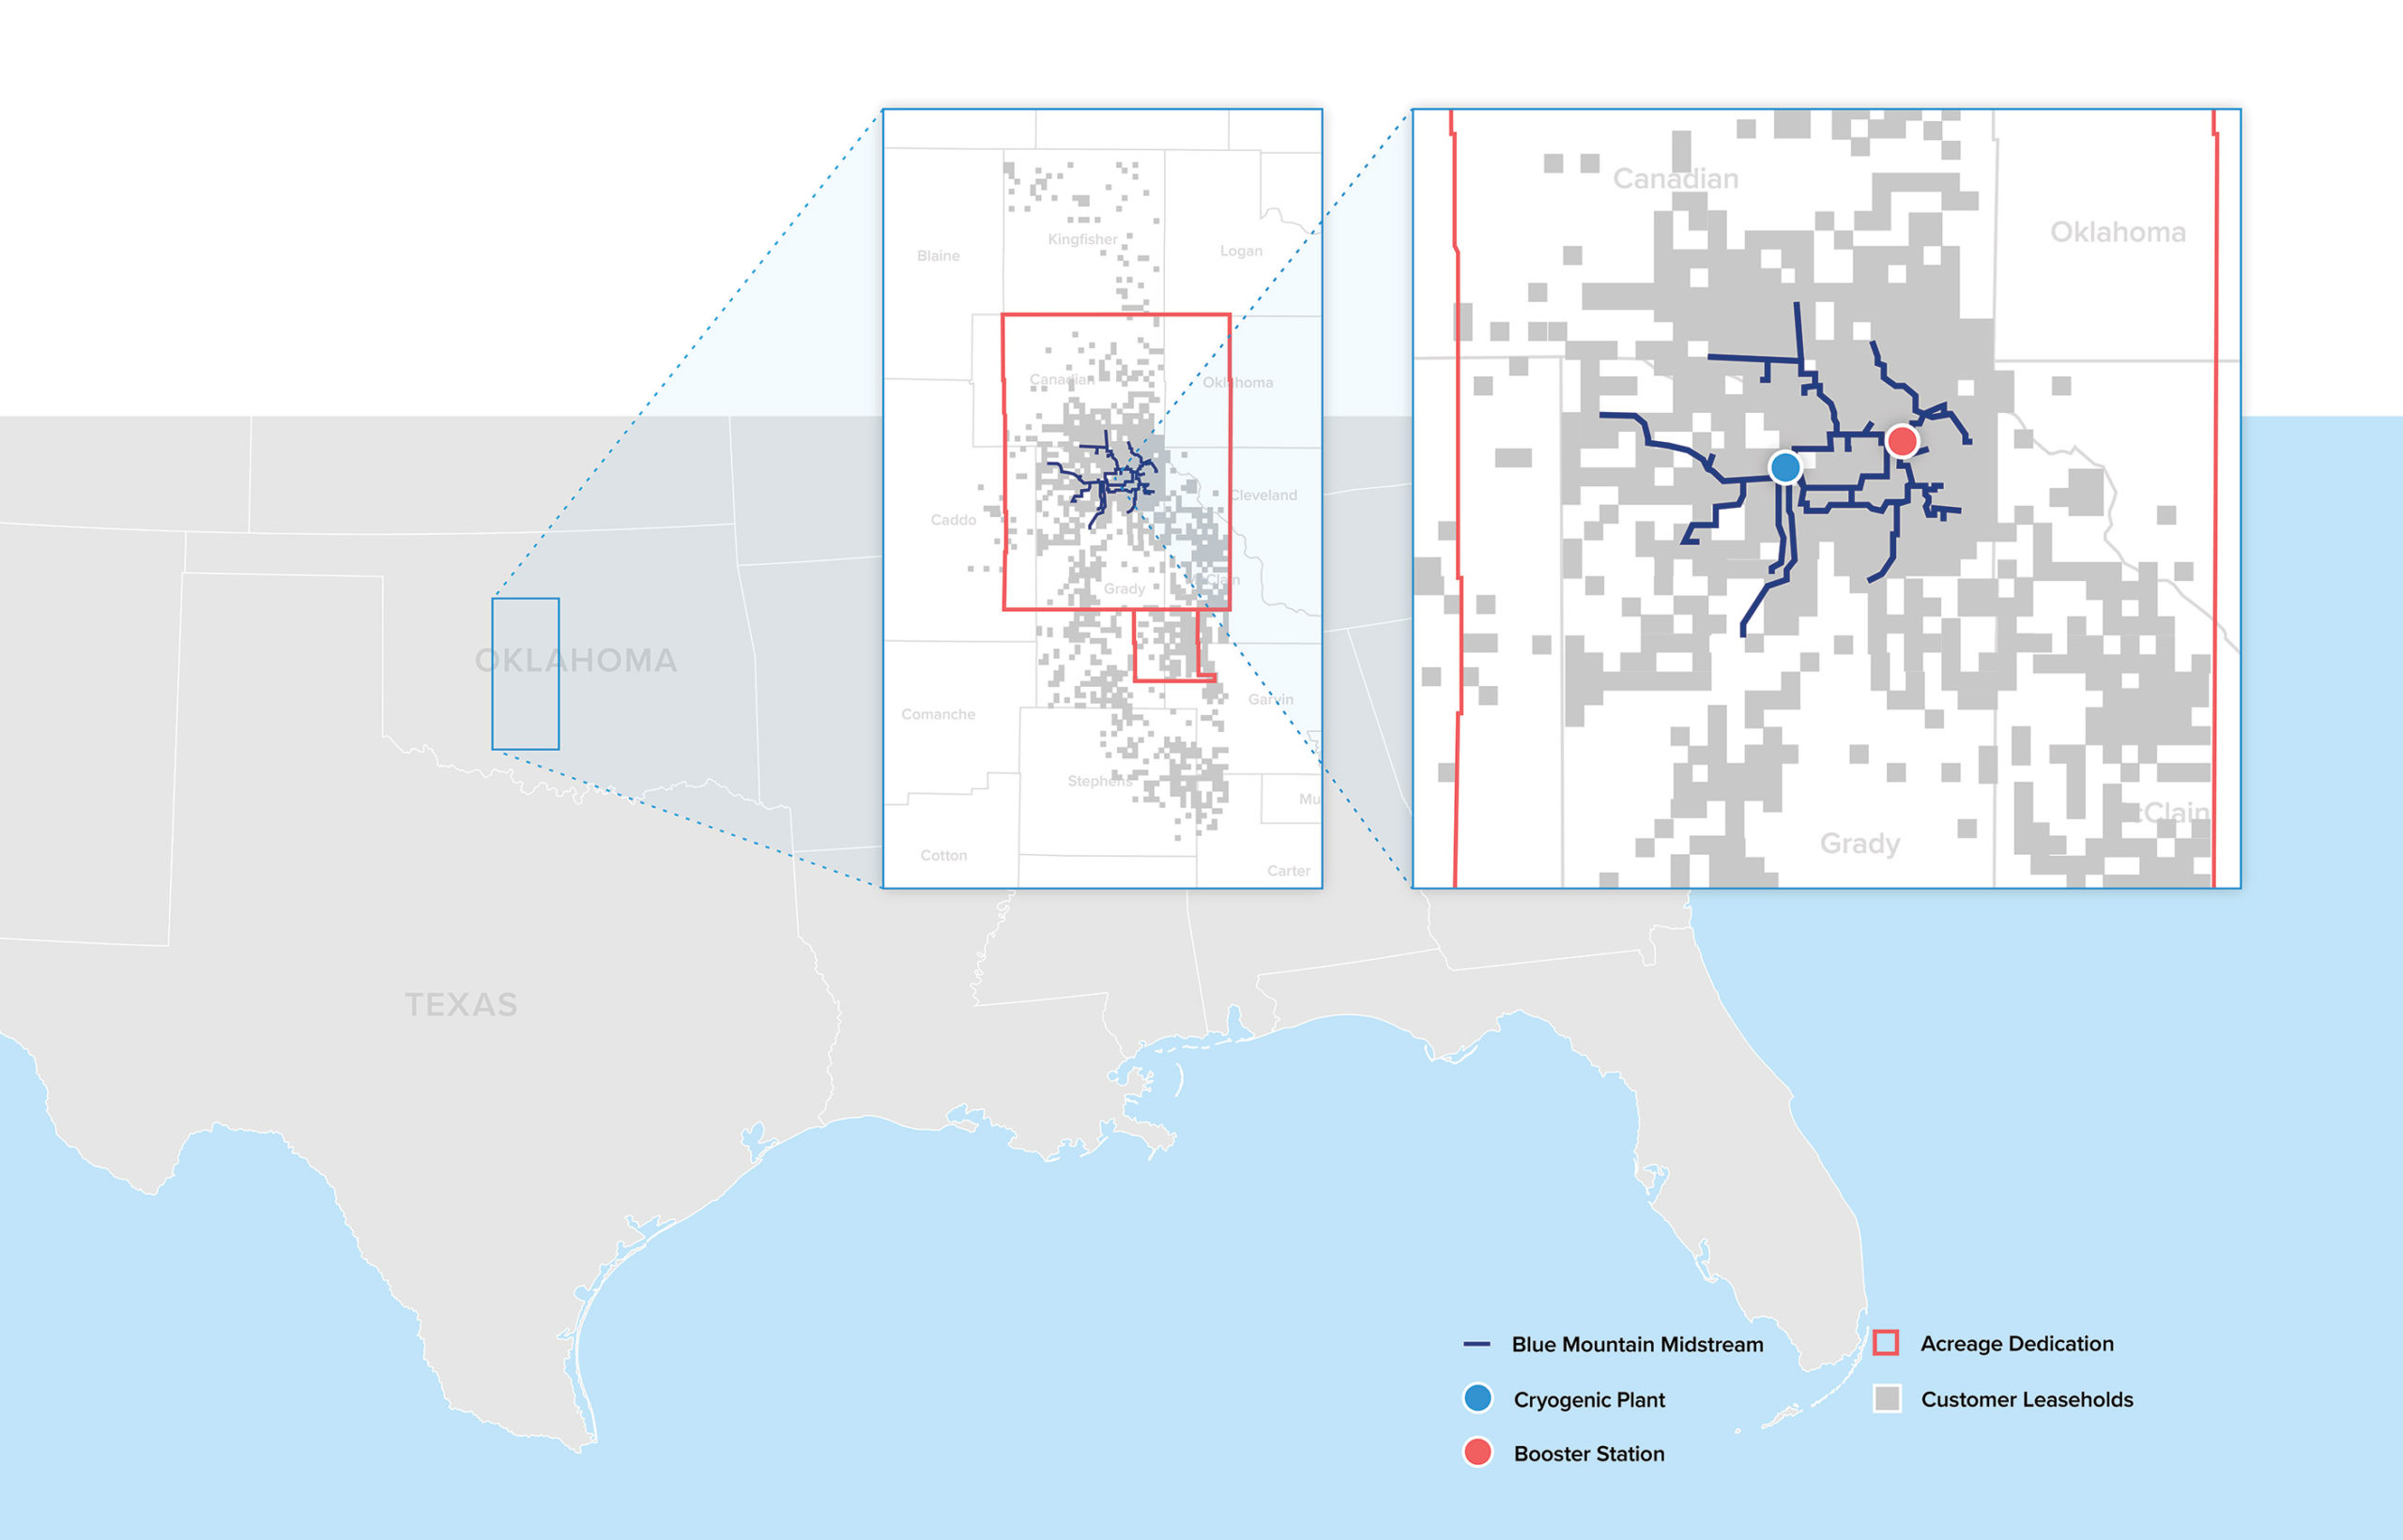 Blue Mountain Midstream operations map zooming in on Oklahoma